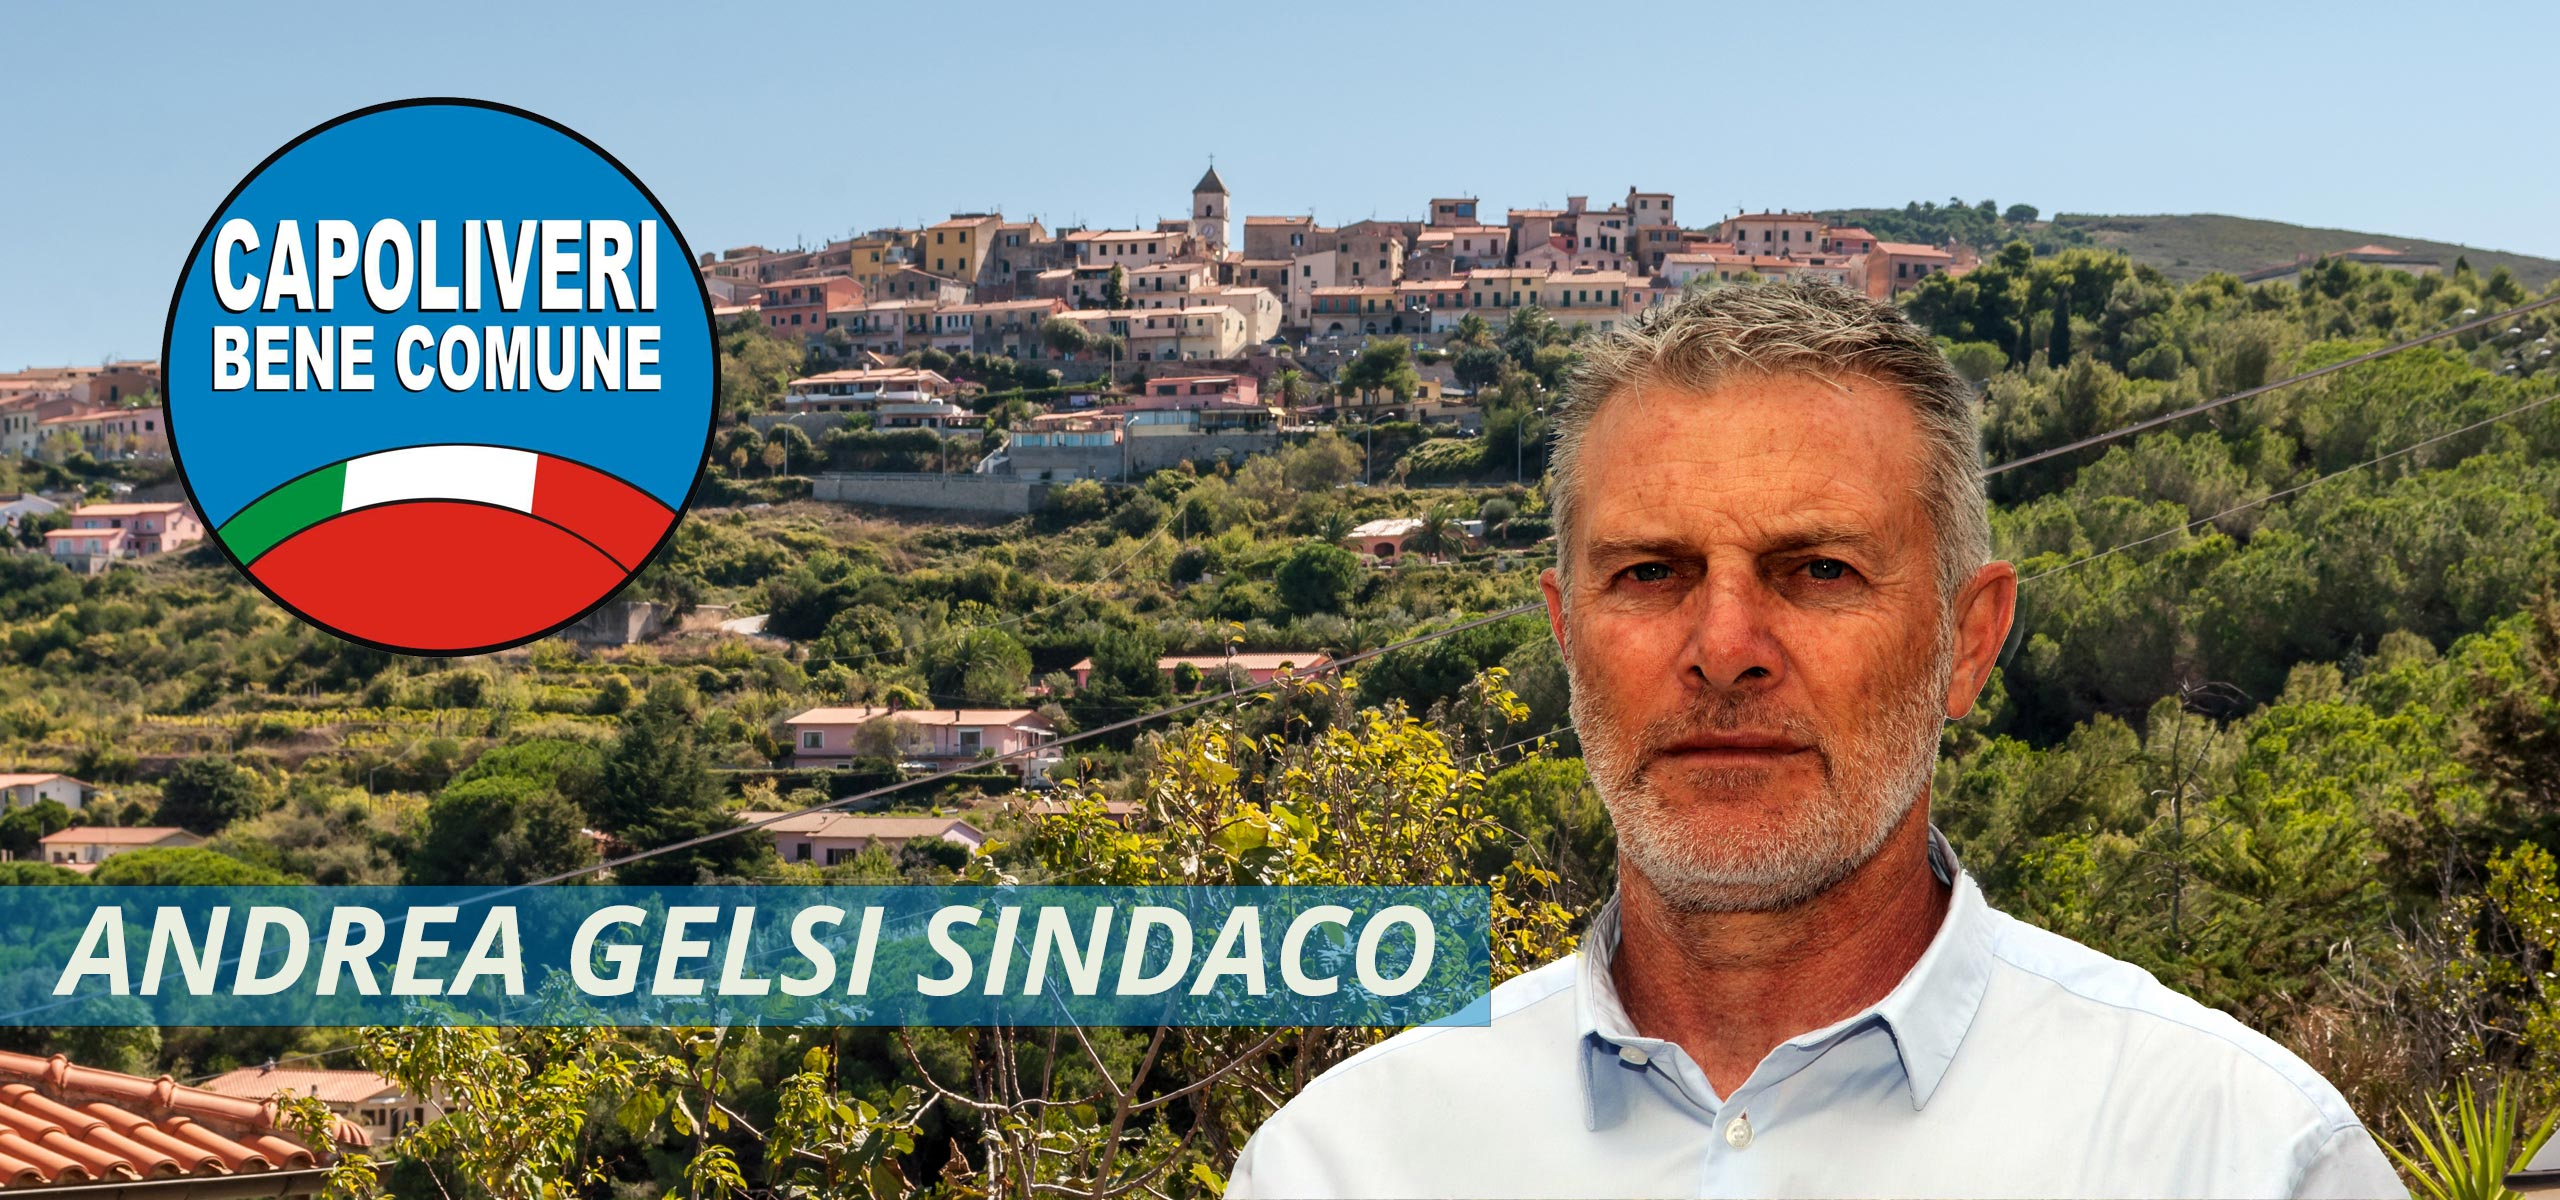 Andrea Gelsi Sindaco